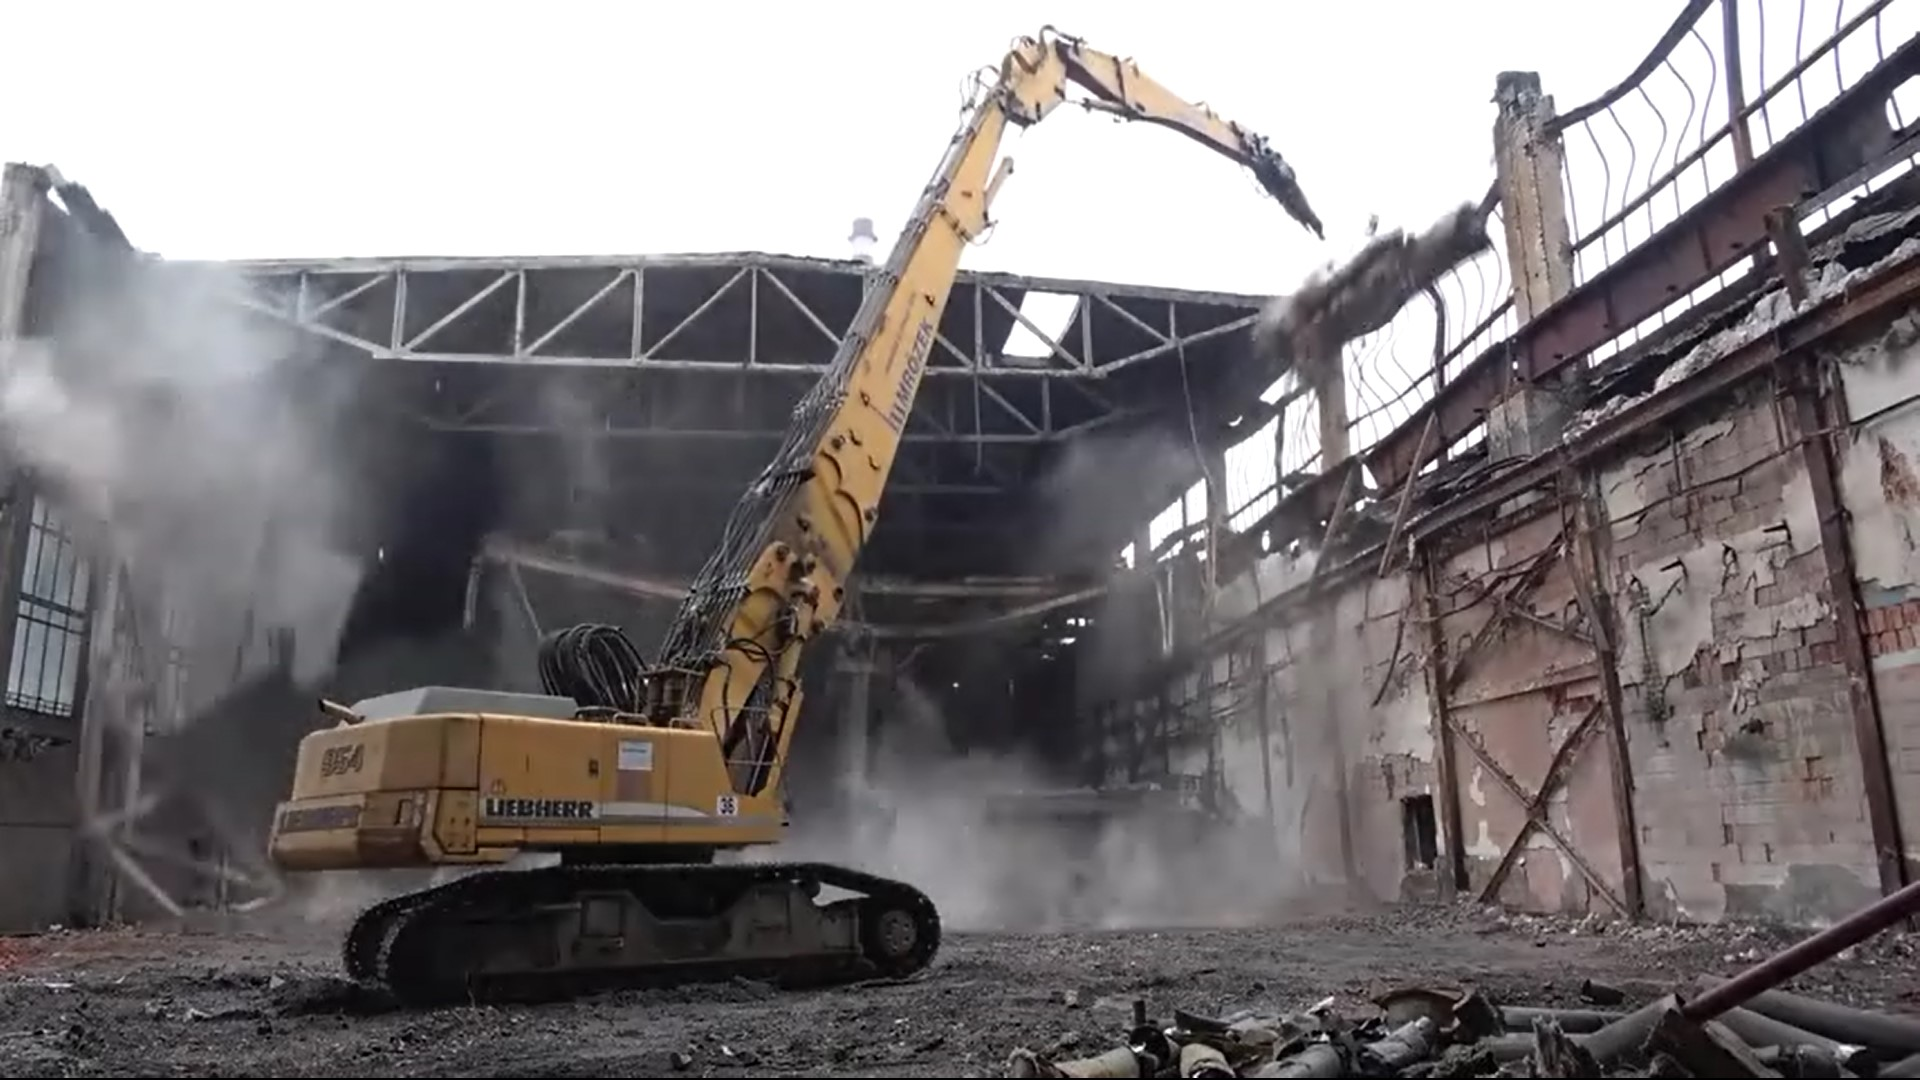 Demolition of the pickling plant in the area of ŽDB DRÁTOVNA a.s.